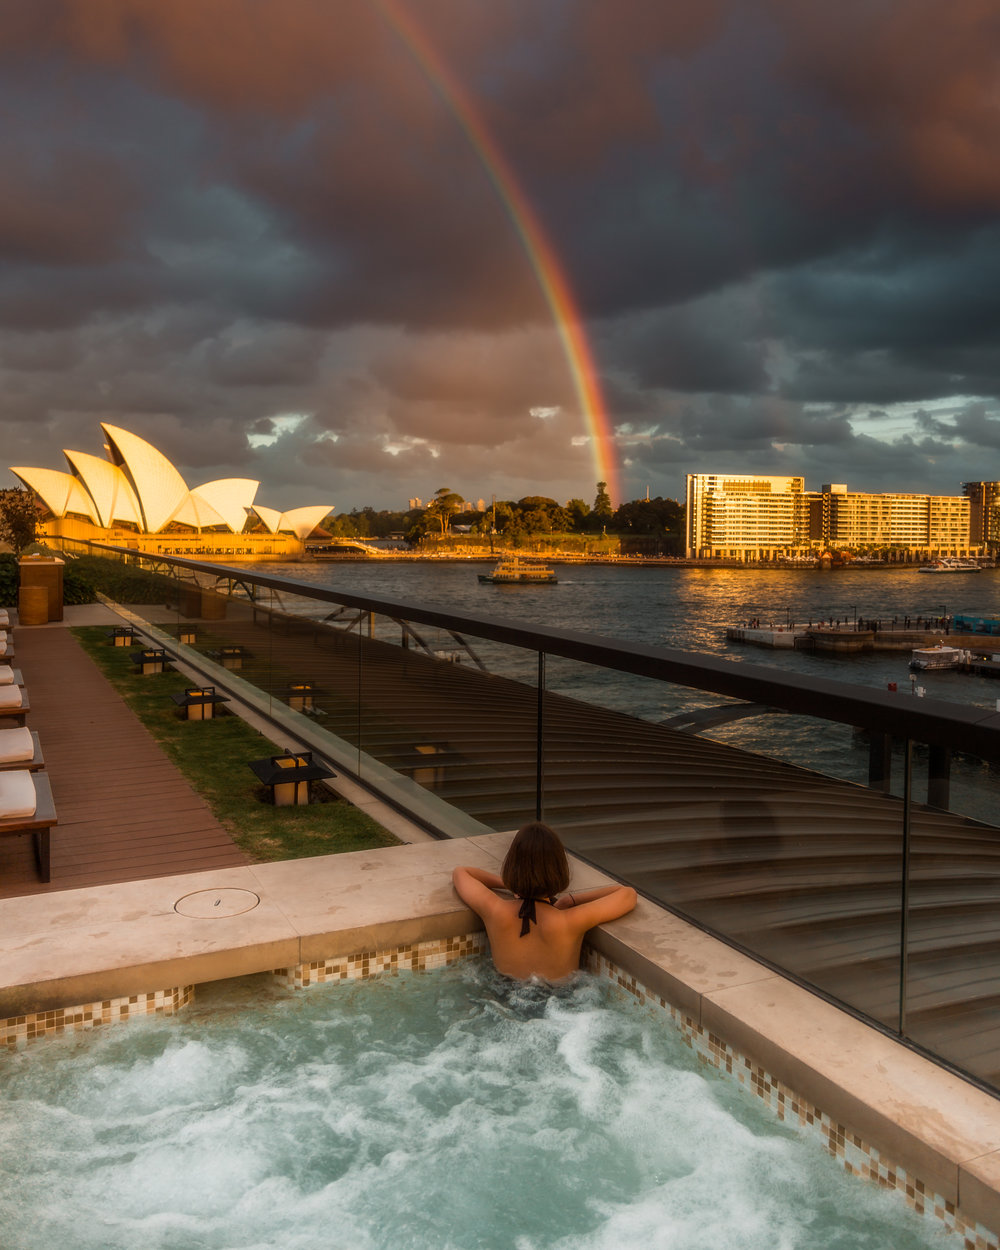 Stayed at The Park Hyatt for a night with Asha.  It was a really nice stay, though the weather wasn't great, we did get a rainbow in the afternoon above the Opera house.  The hotel has an amazing location with amazing views of the opera house and bridge, yet feels spaciously placed by the bridge.